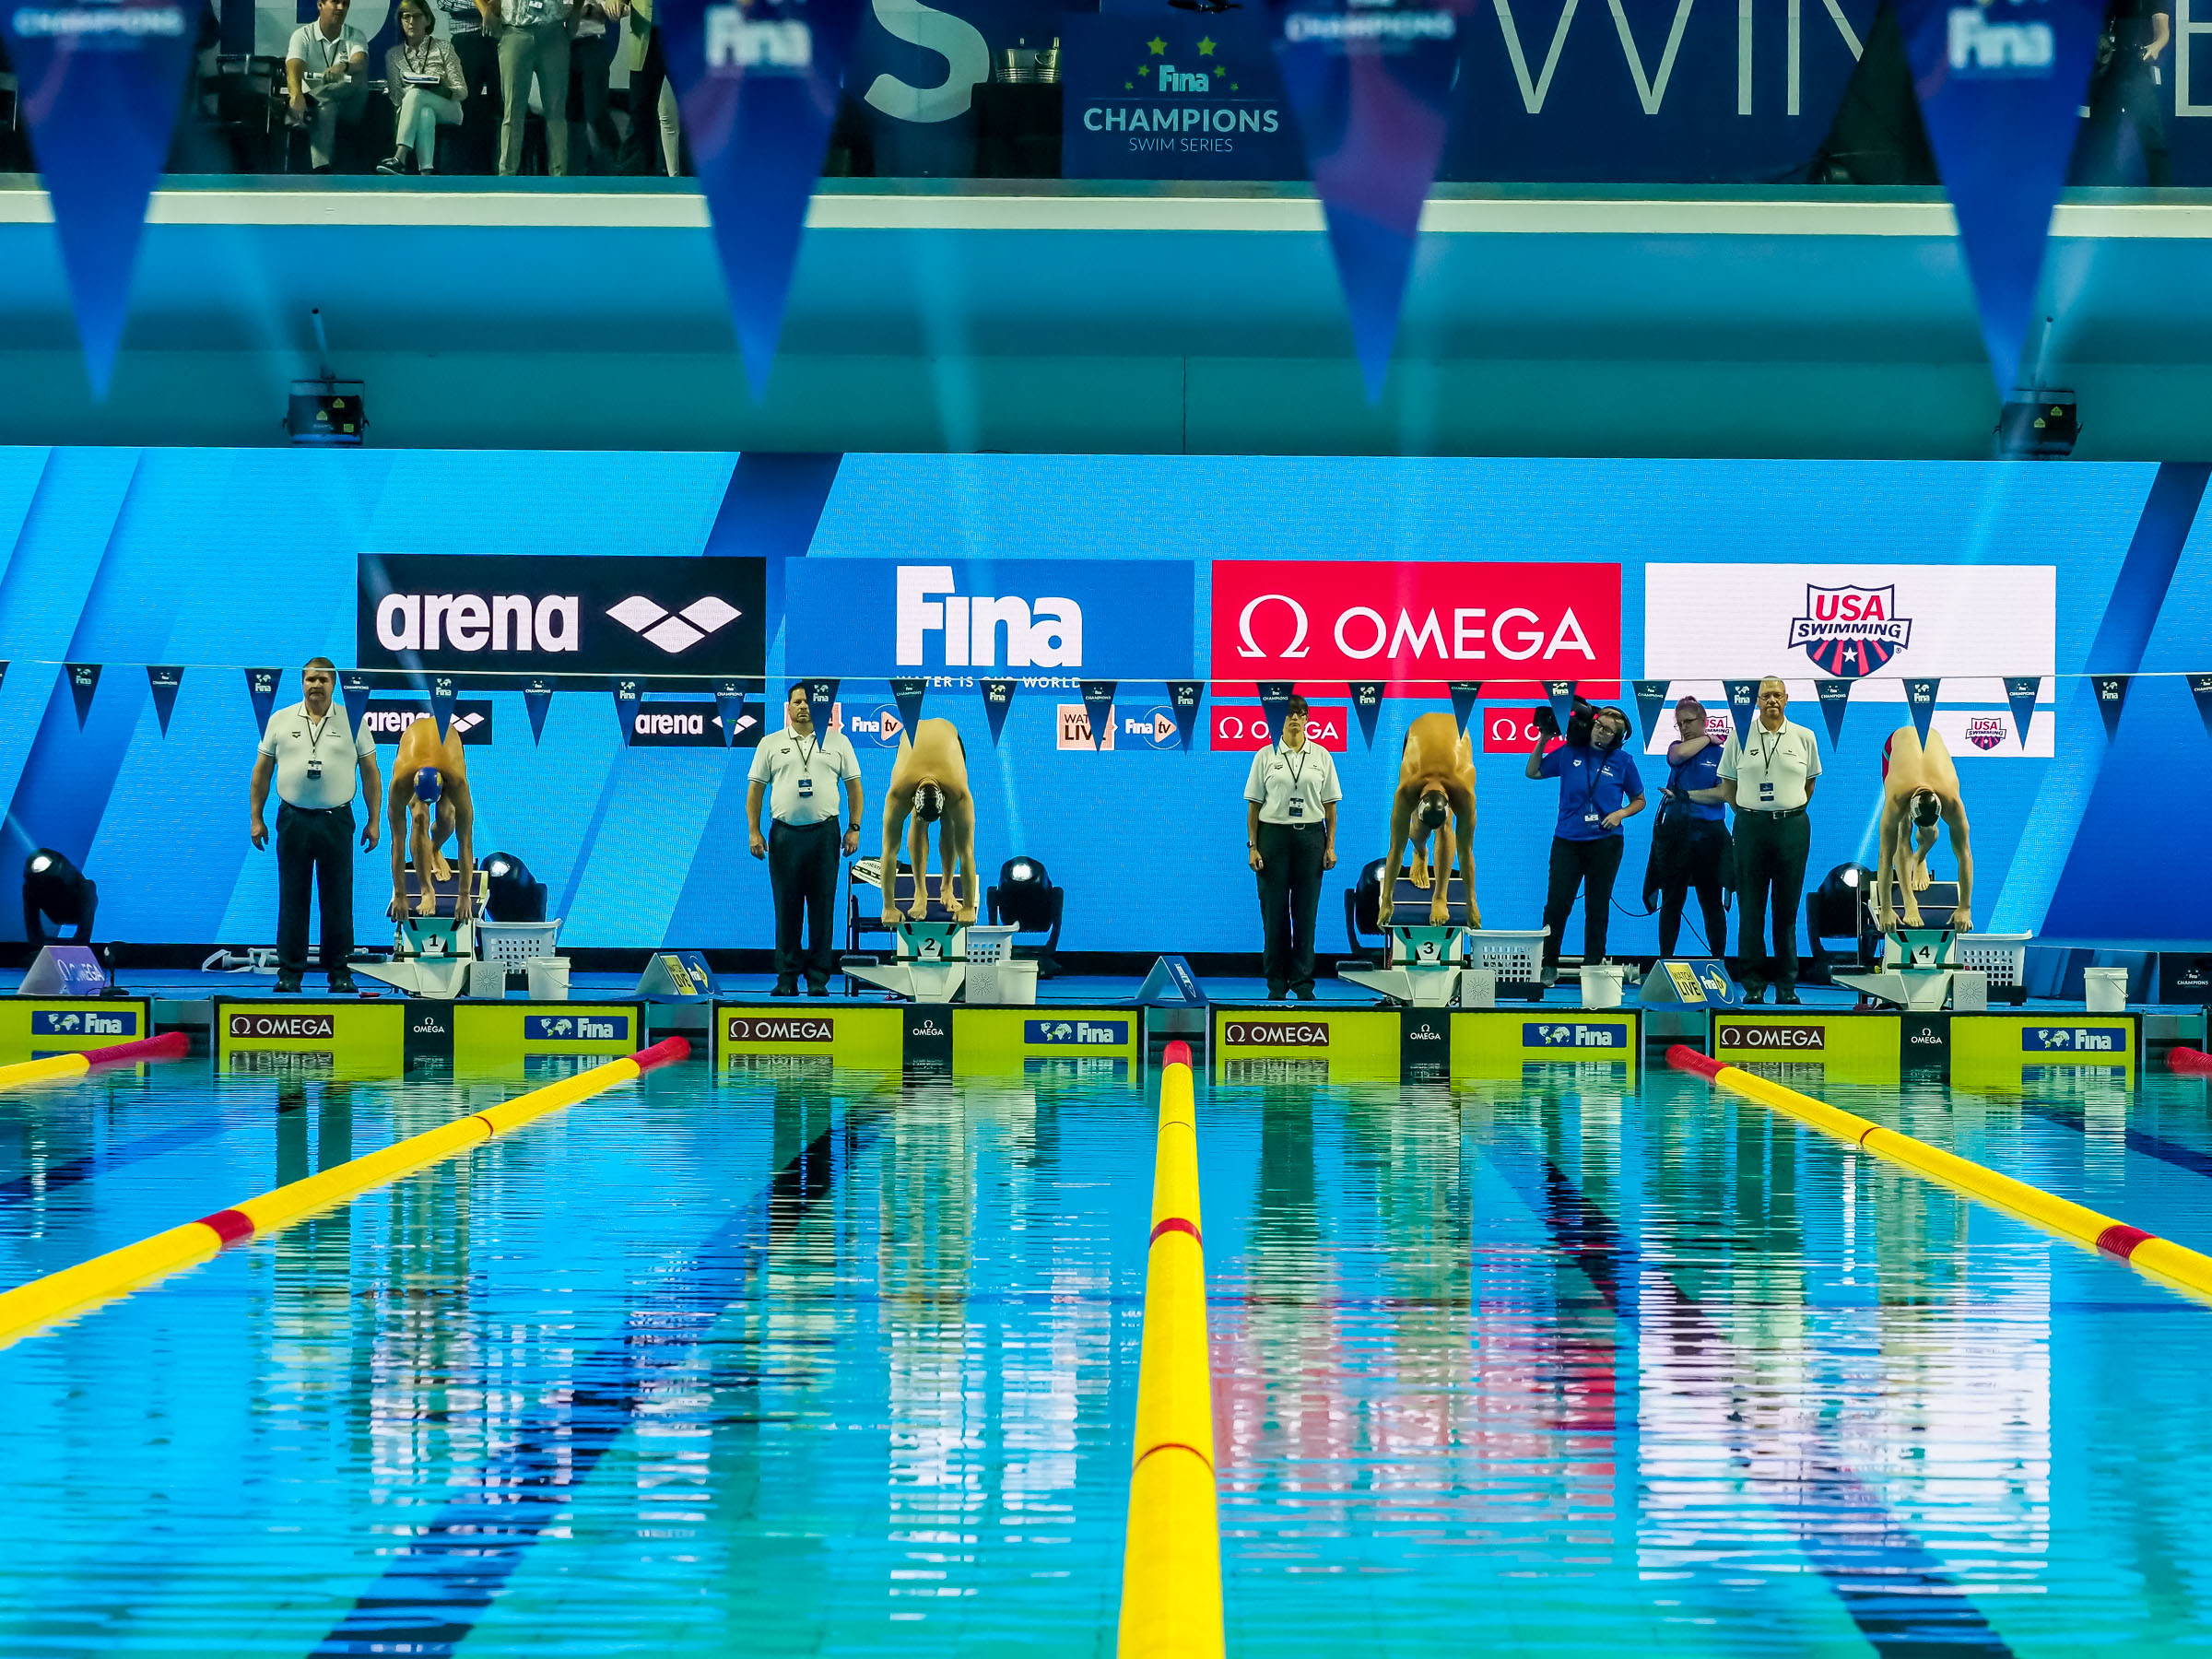 2020 FINA Champions Swim Series to Take Place in Shenzhen & Beijing, China